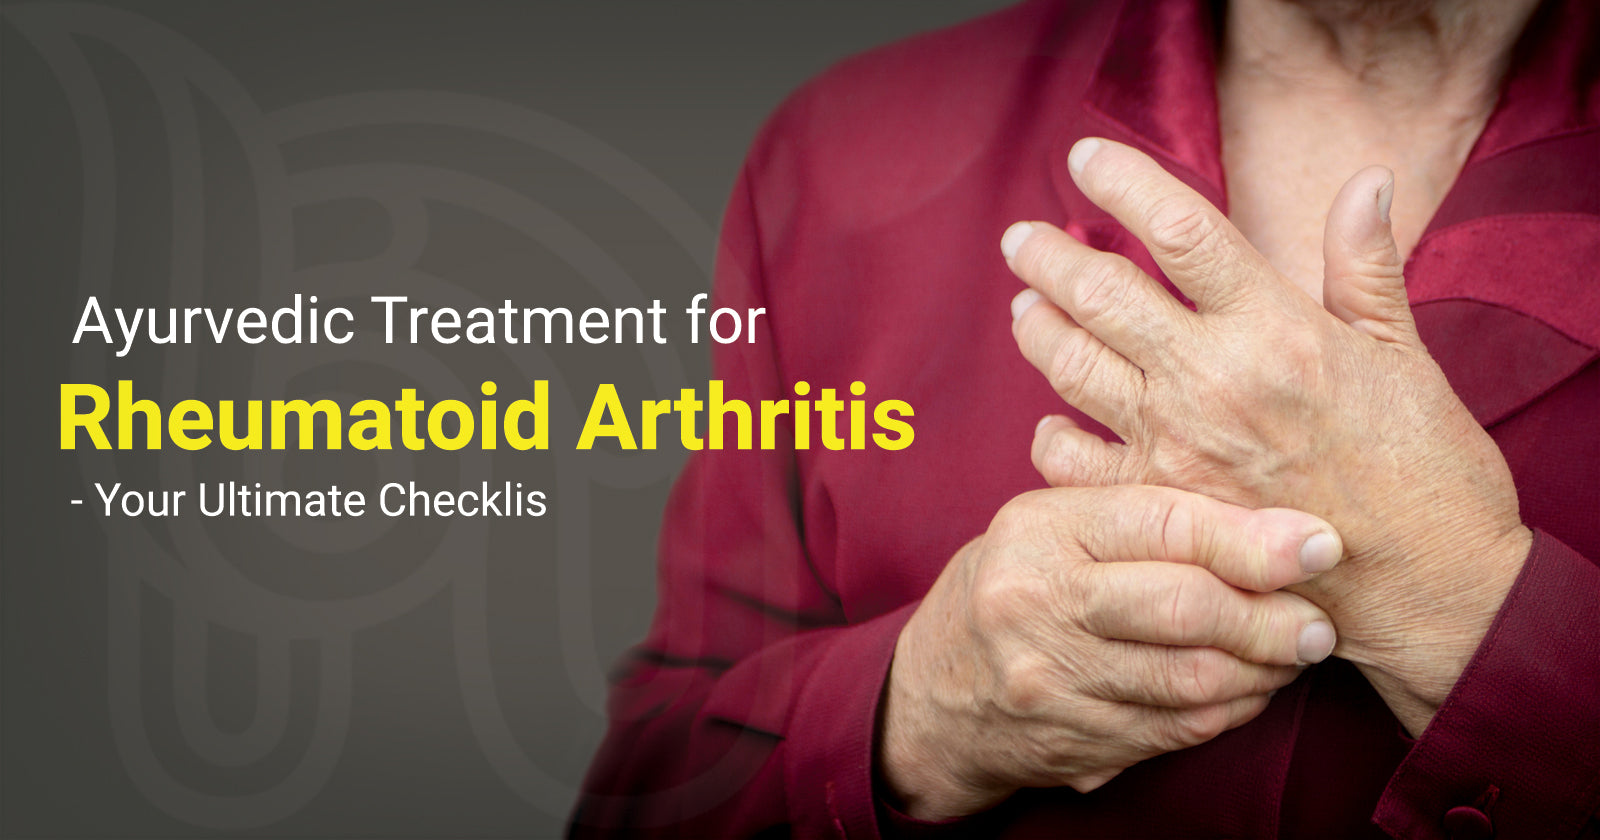 Ayurvedic Treatment for Rheumatoid Arthritis – Your Ultimate Checklist